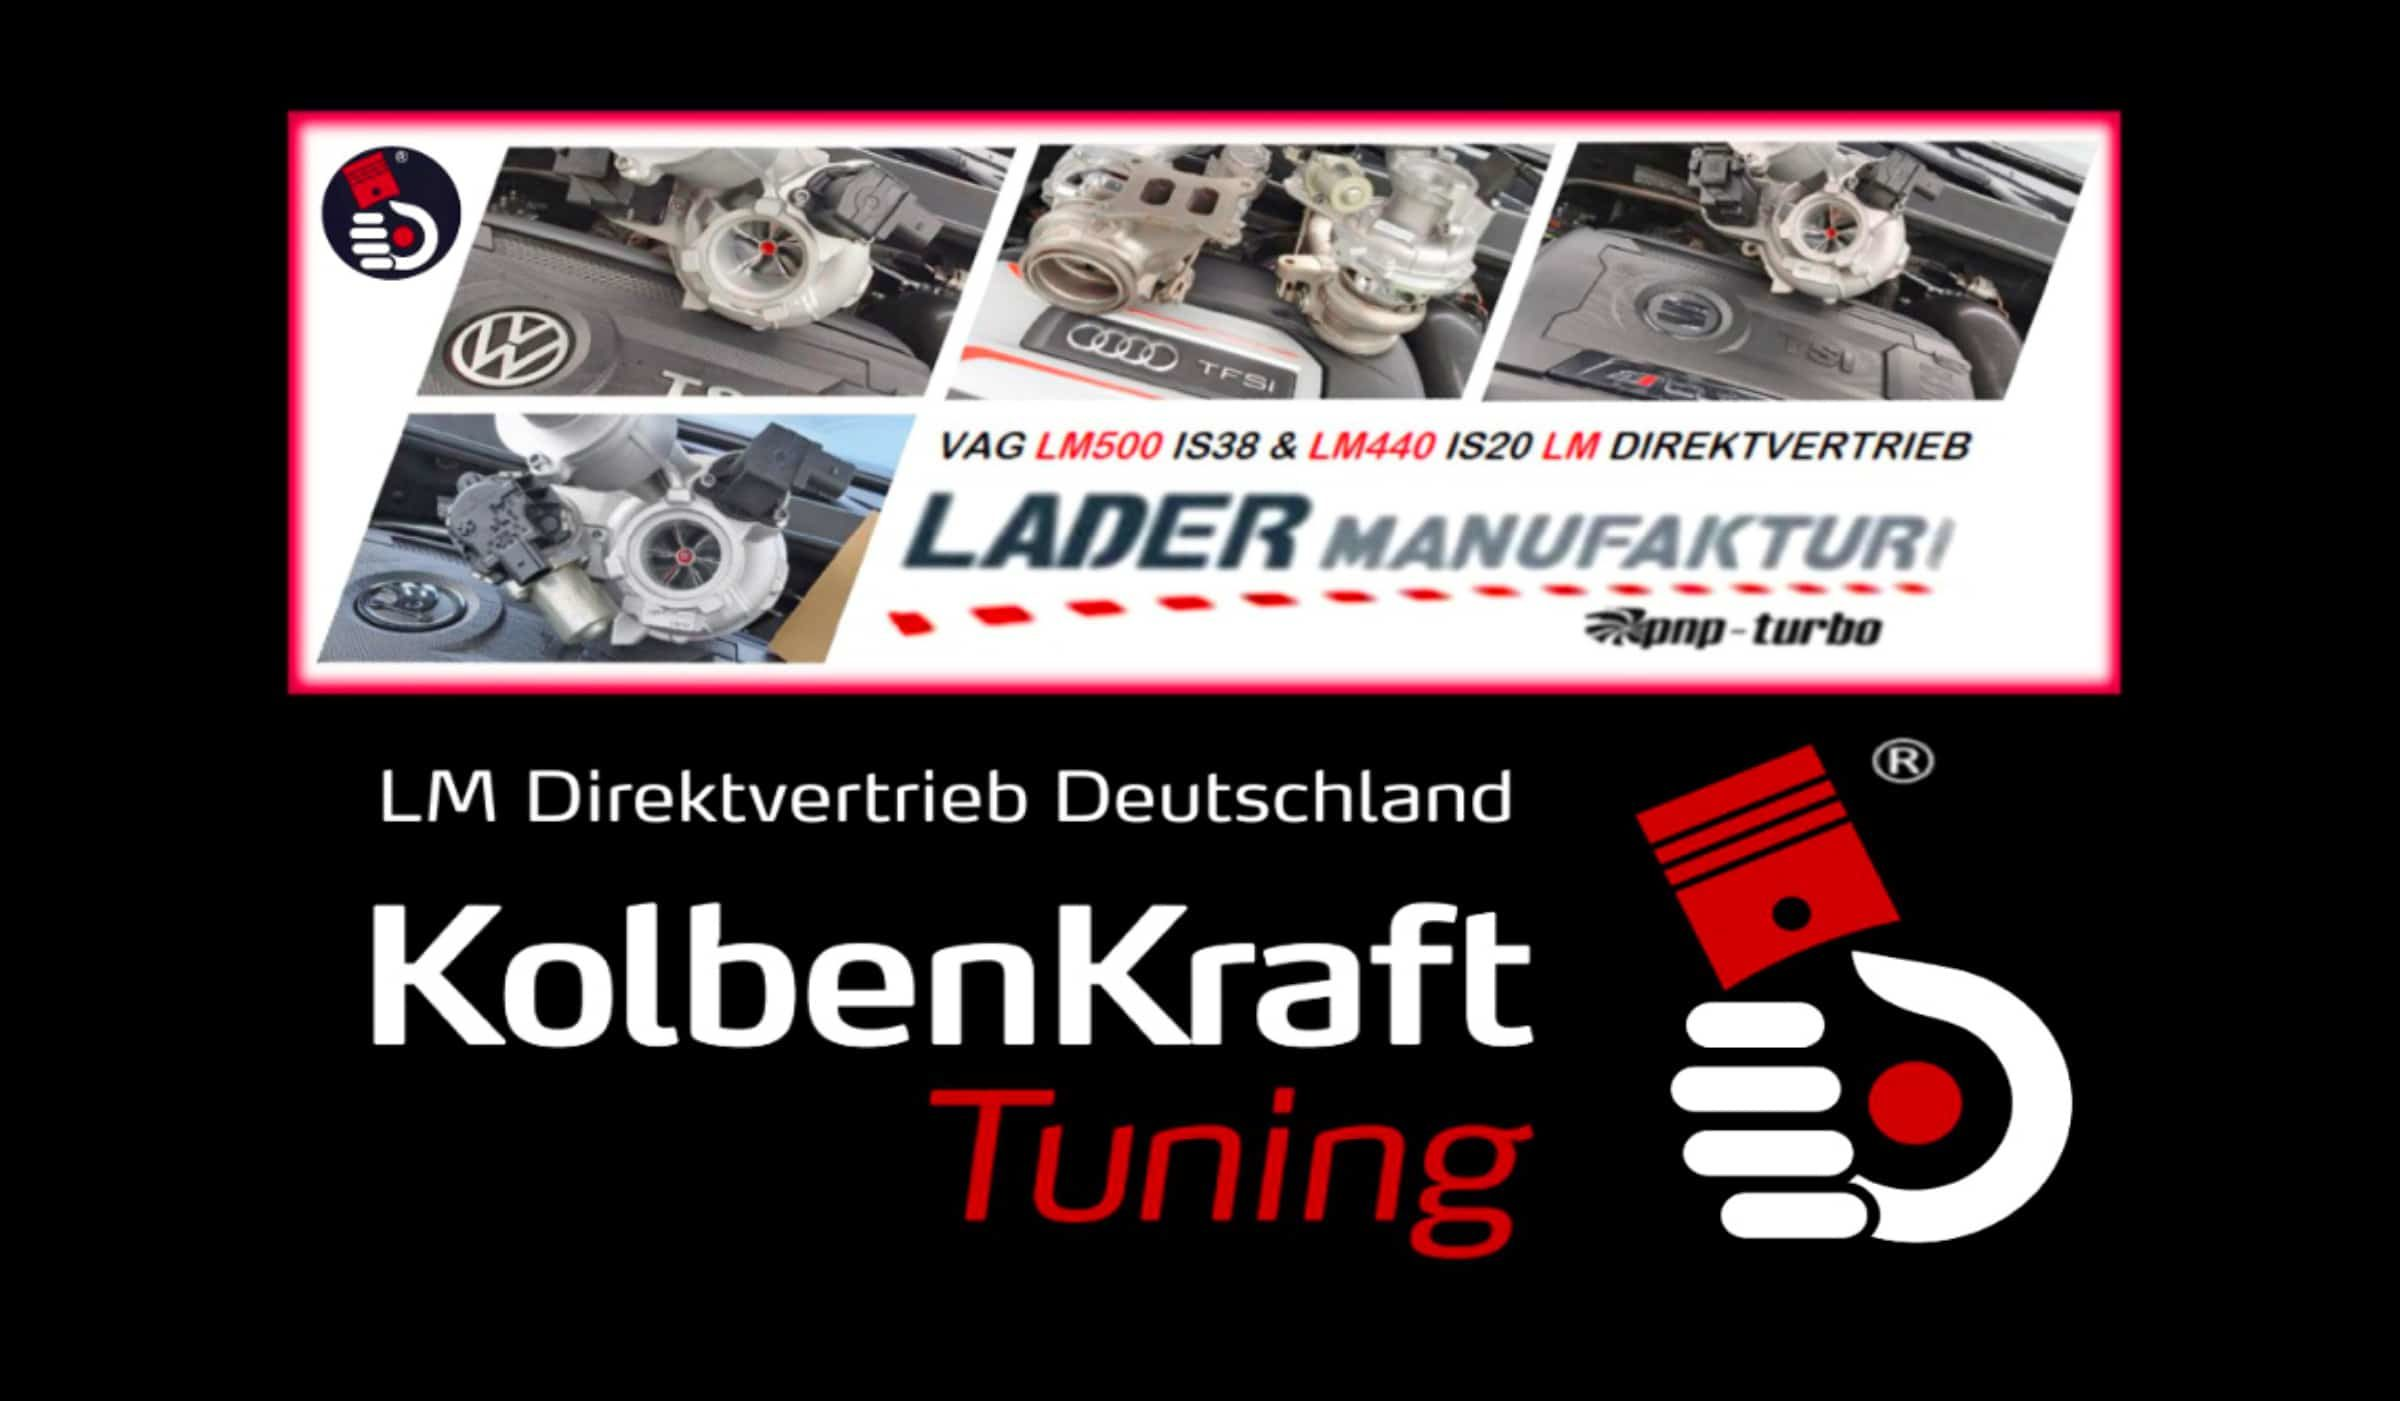 KolbenKraft Tuning | LM Turbo Distribution der Ladermanufaktur